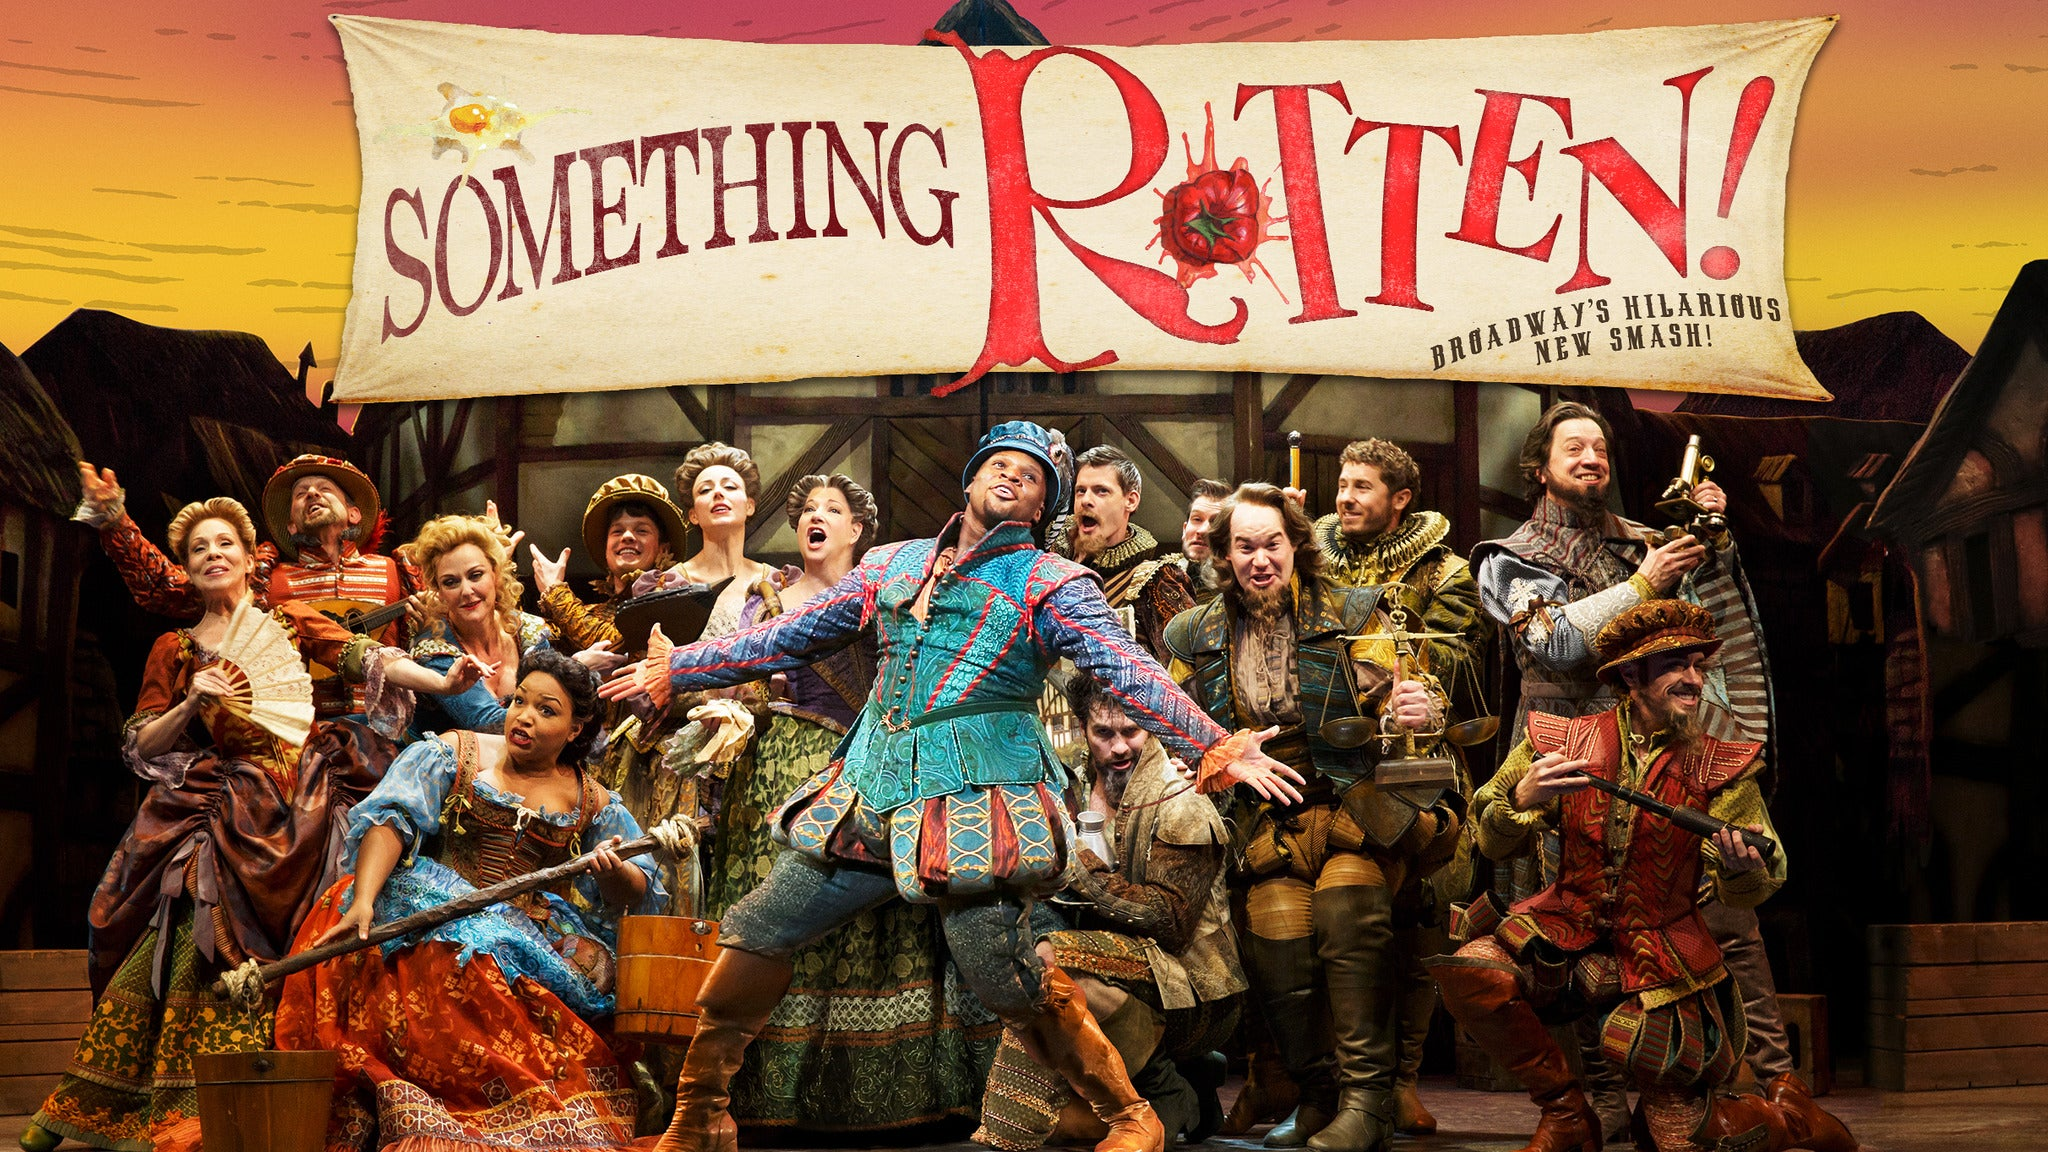 Something Rotten! - Costa Mesa, CA 92626